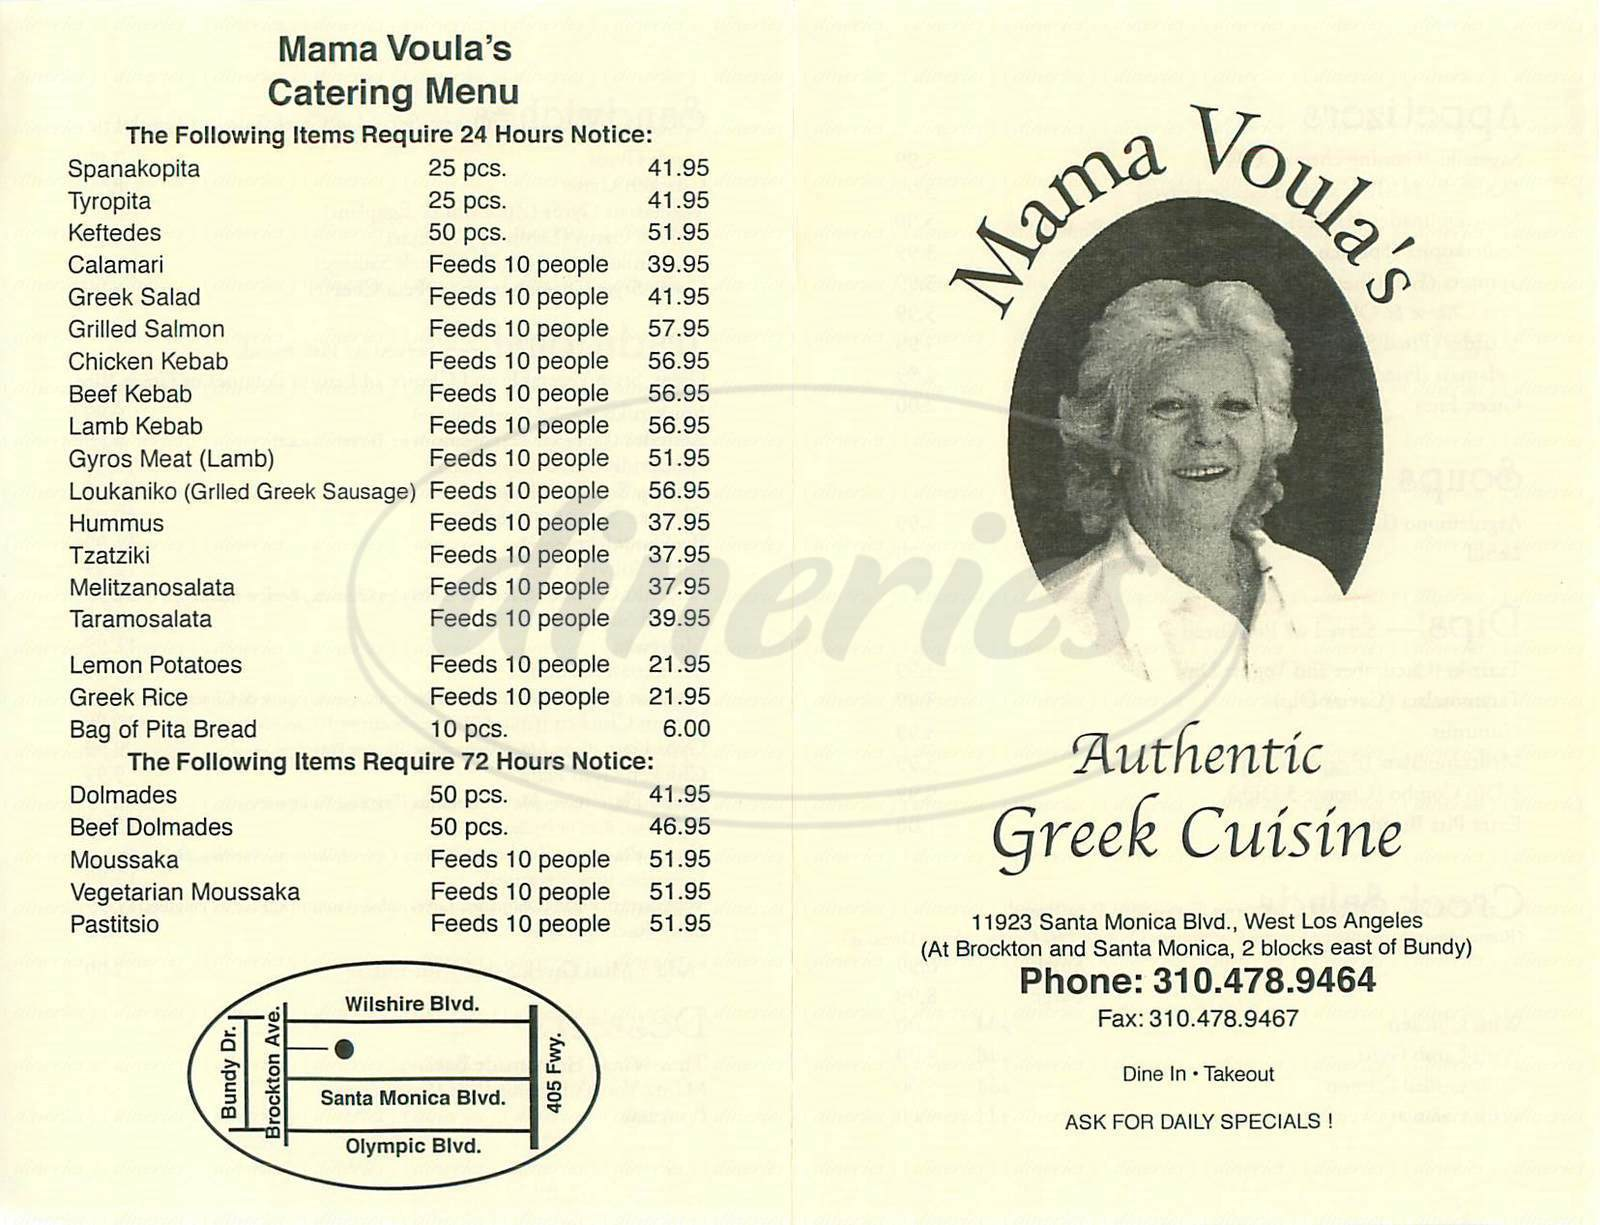 menu for Mama Voula's